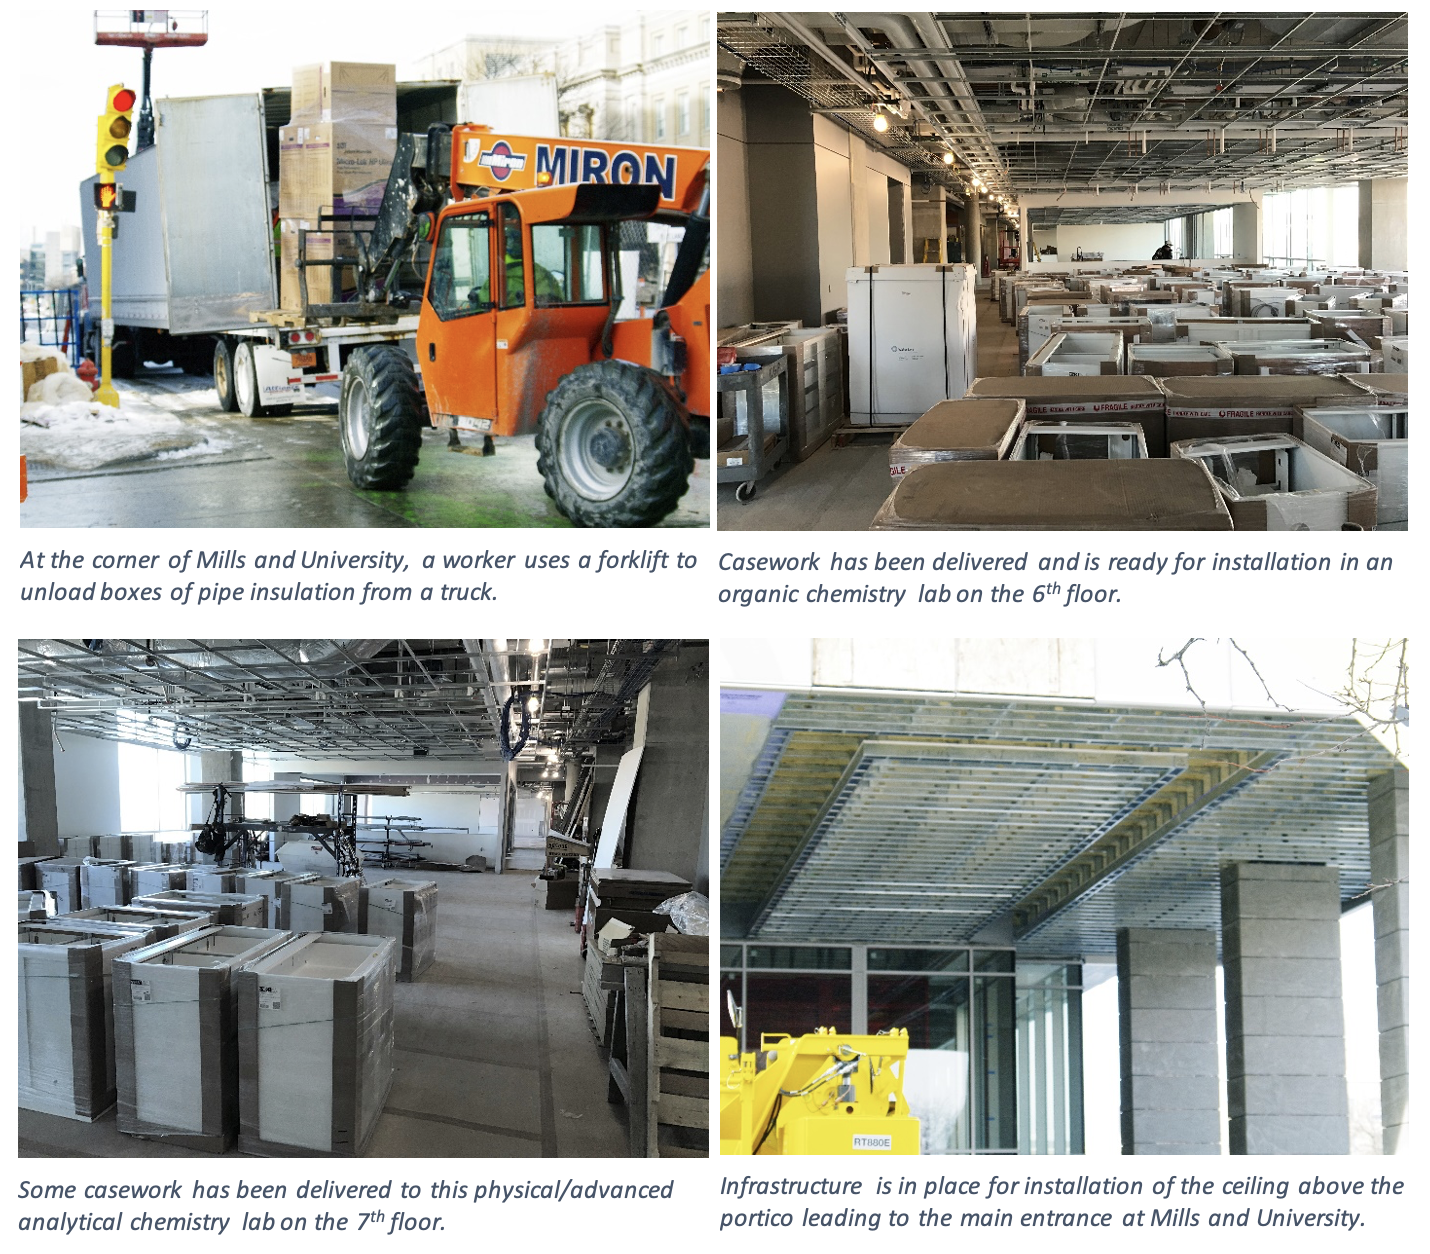 In the right image, casework has been delivered and is ready for installation in an organic chemistry lab on the 6th floor. On the top left, at the corner of Mills and University, a worker uses a forklift to unload boxes of pipe insulation from a truck. On the bottom left, some casework has been delivered to this physical/advanced analytical chemistry lab on the 7th floor. On the bottom right, infrastructure is in place for installation of the ceiling above the portico leading to the main entrance at Mills and University.